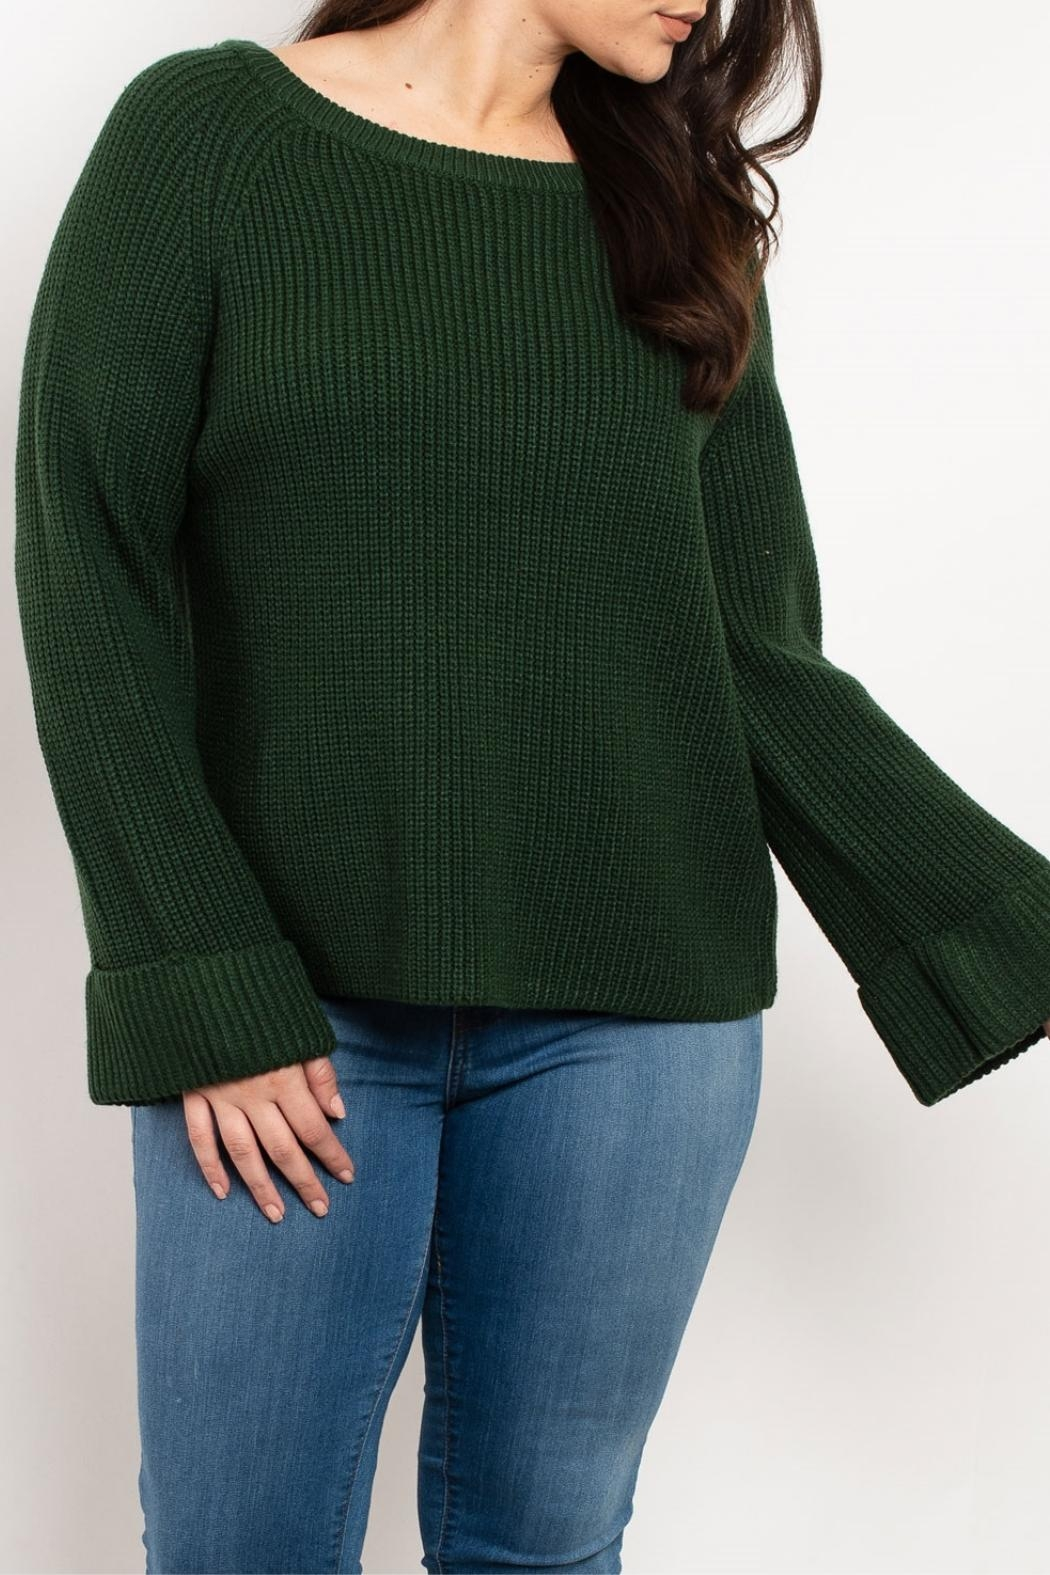 Cozy Casual Hunter Green Sweater - Main Image